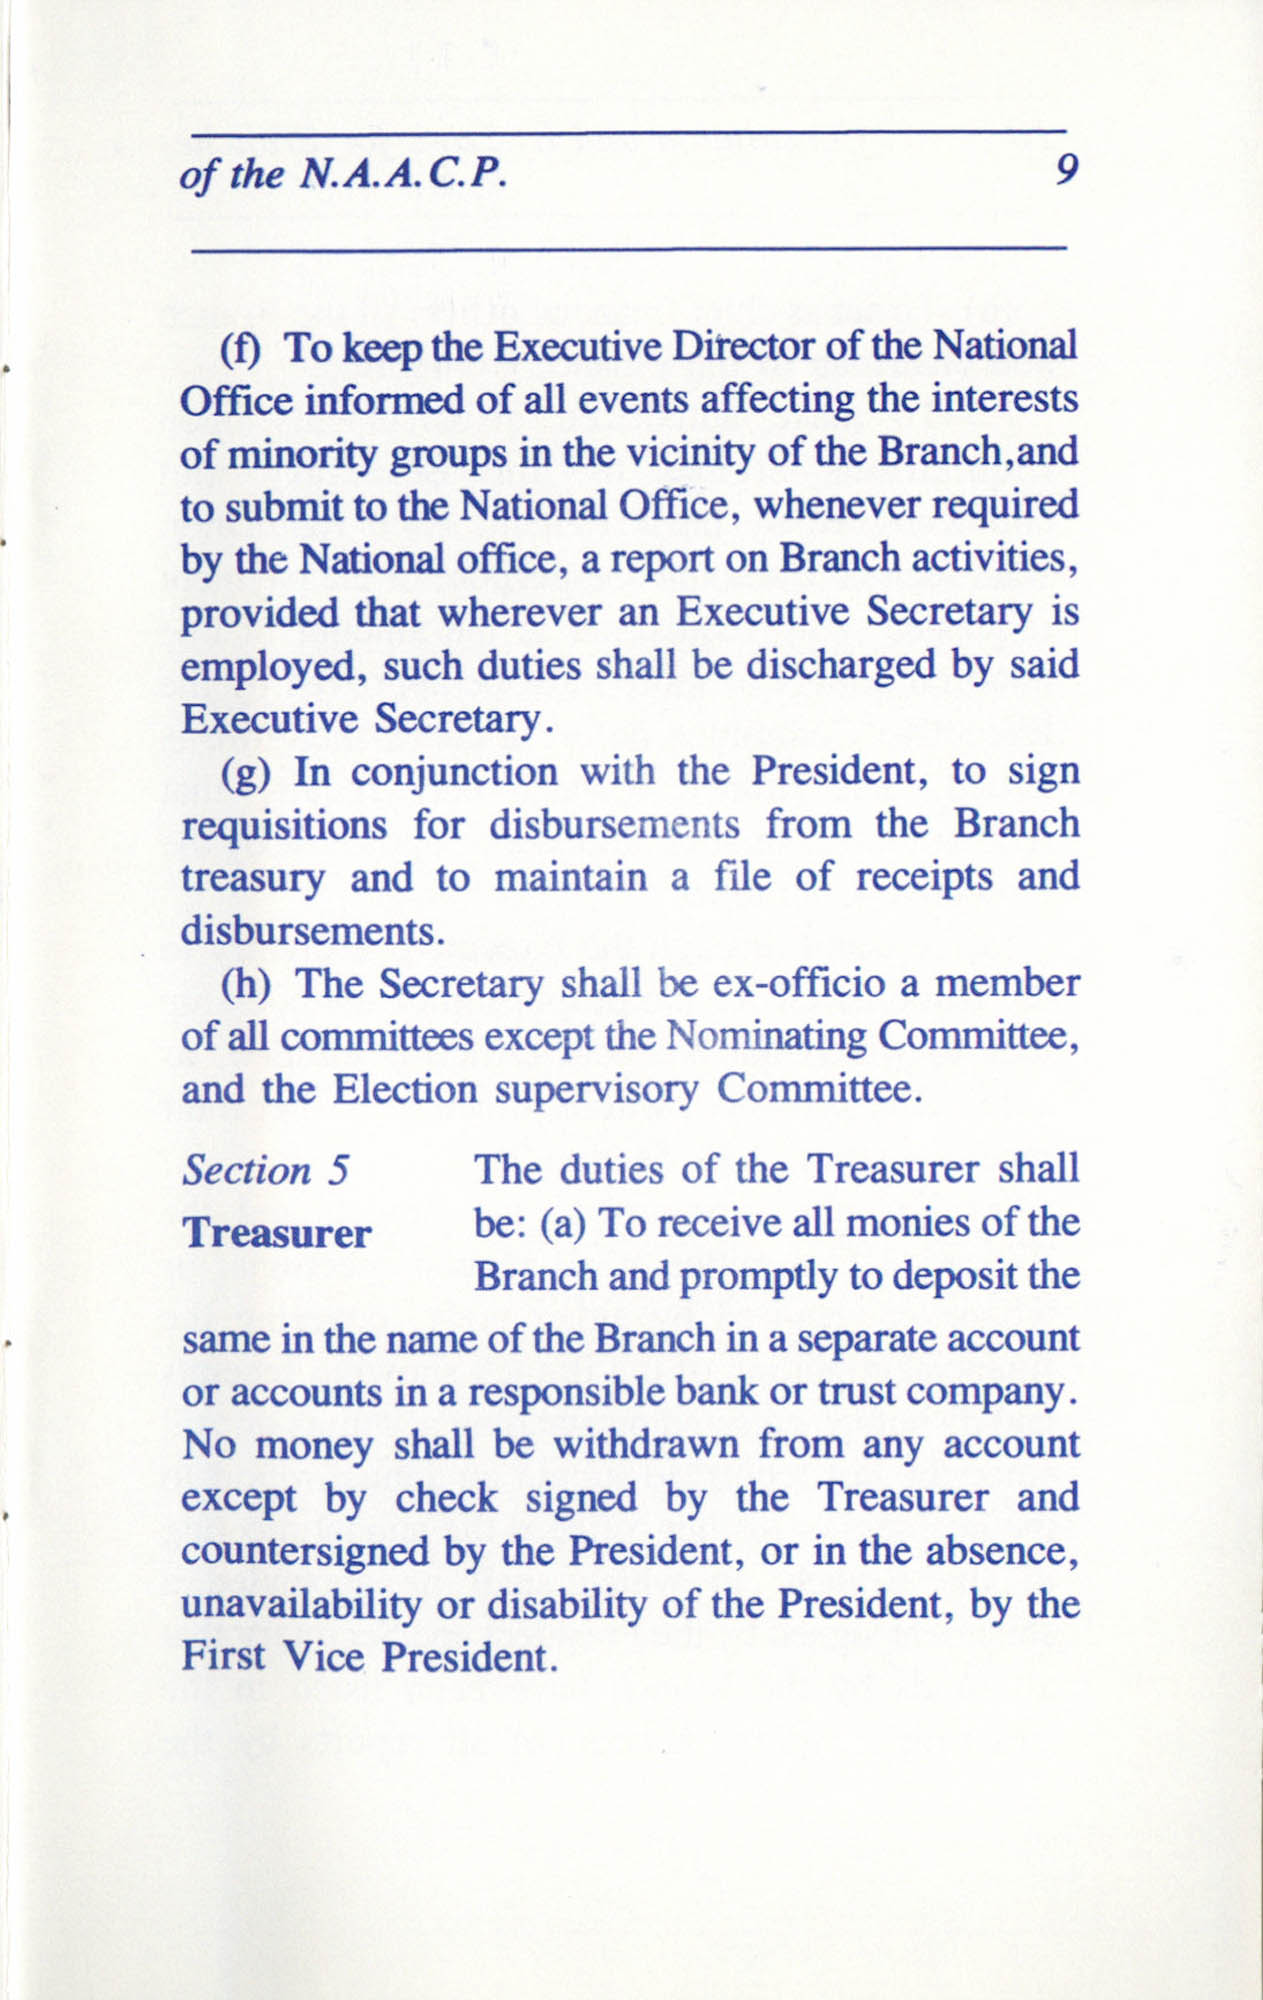 Constitution and By-Laws for Branches of the NAACP, June 1993, Page 9